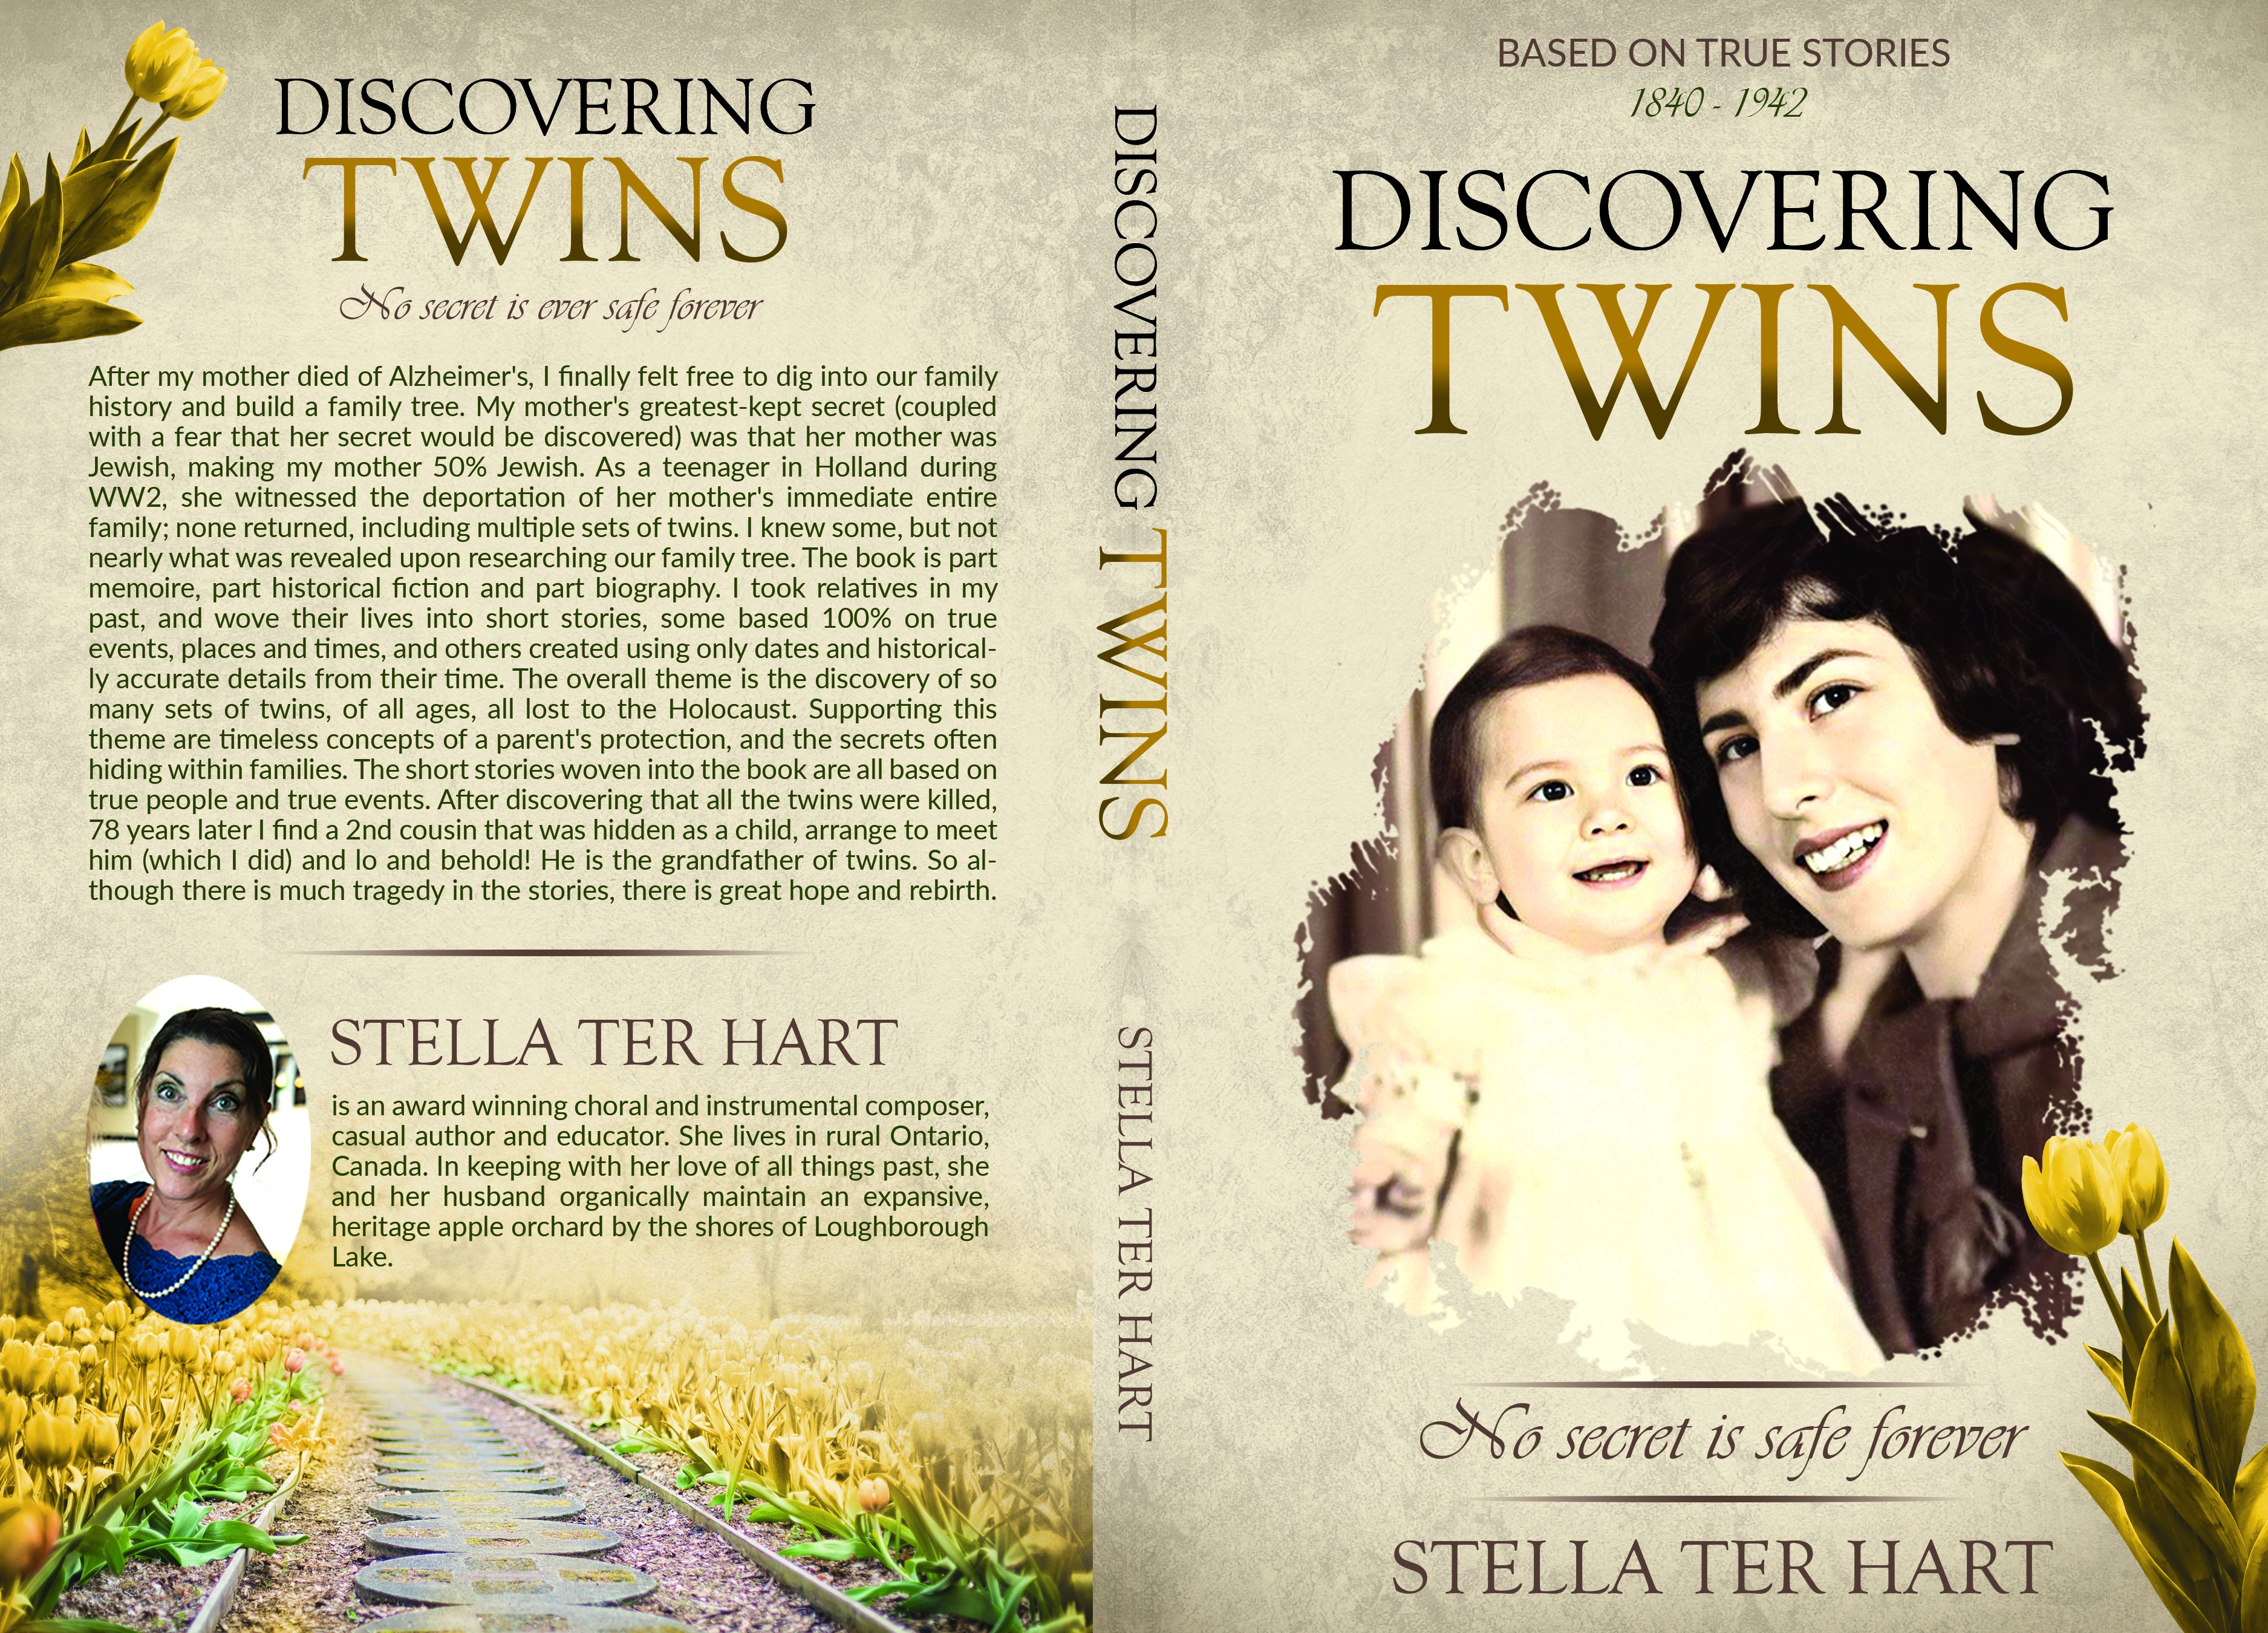 Emotional Book Cover Design for true stories of Holocaust Twins discovered